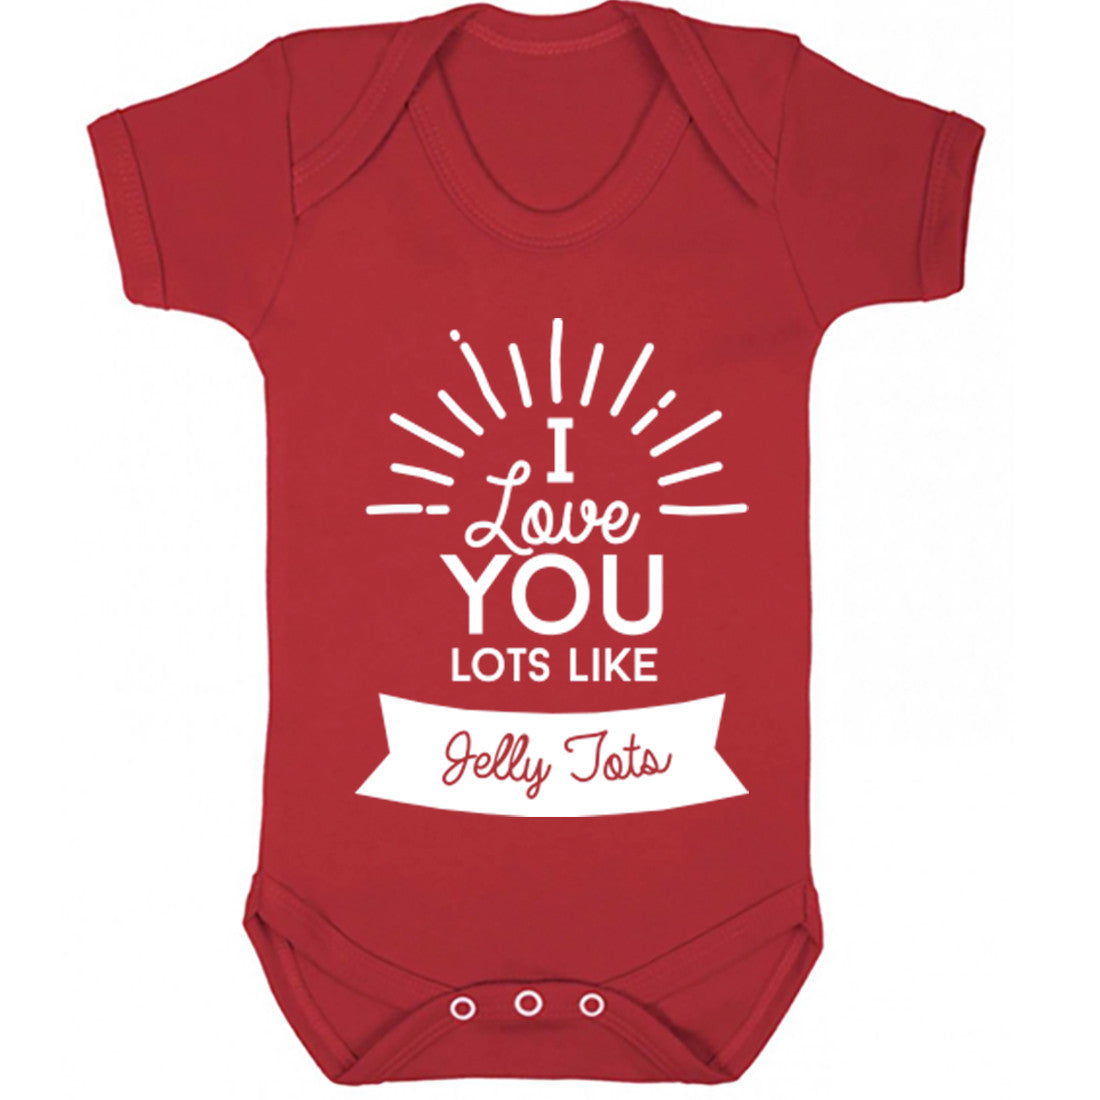 I Love You Lots Like Jelly Tots Baby Vest K0334 - Illustrated Identity Ltd.